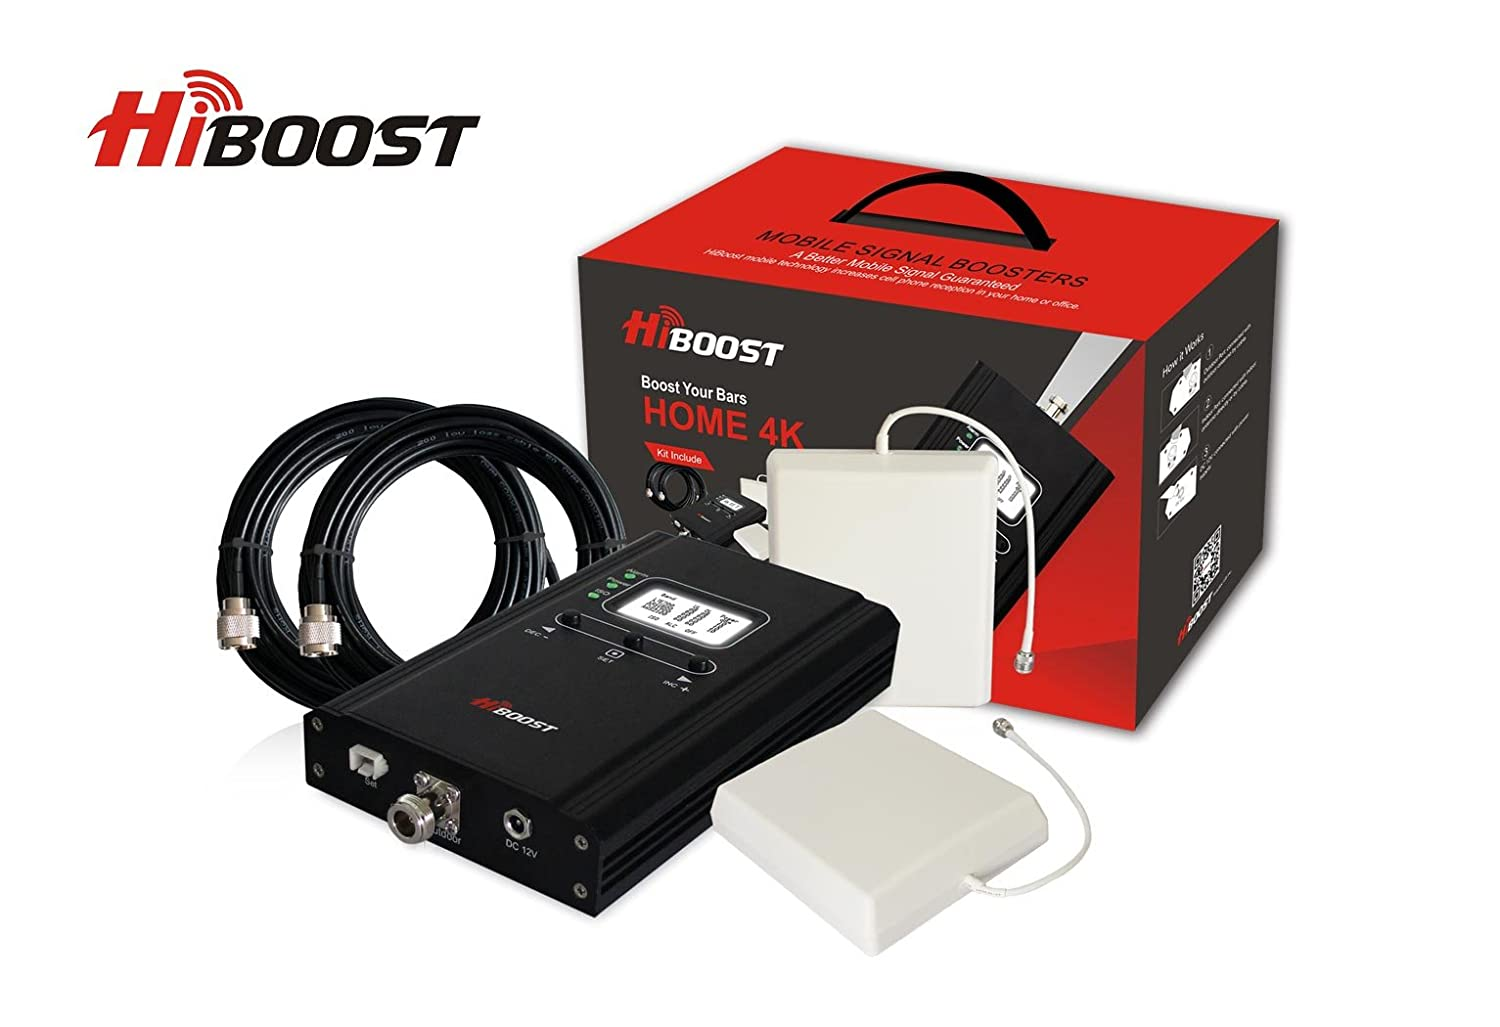 HiBoost 4K LCD – Cell Phone Signal Booster - Improves Reception on Phones, Tablets & Hotspots - Premium & Durable Equipment - Easy to Install for Homes & Offices! Boost up to 4,000 Sq. Ft.